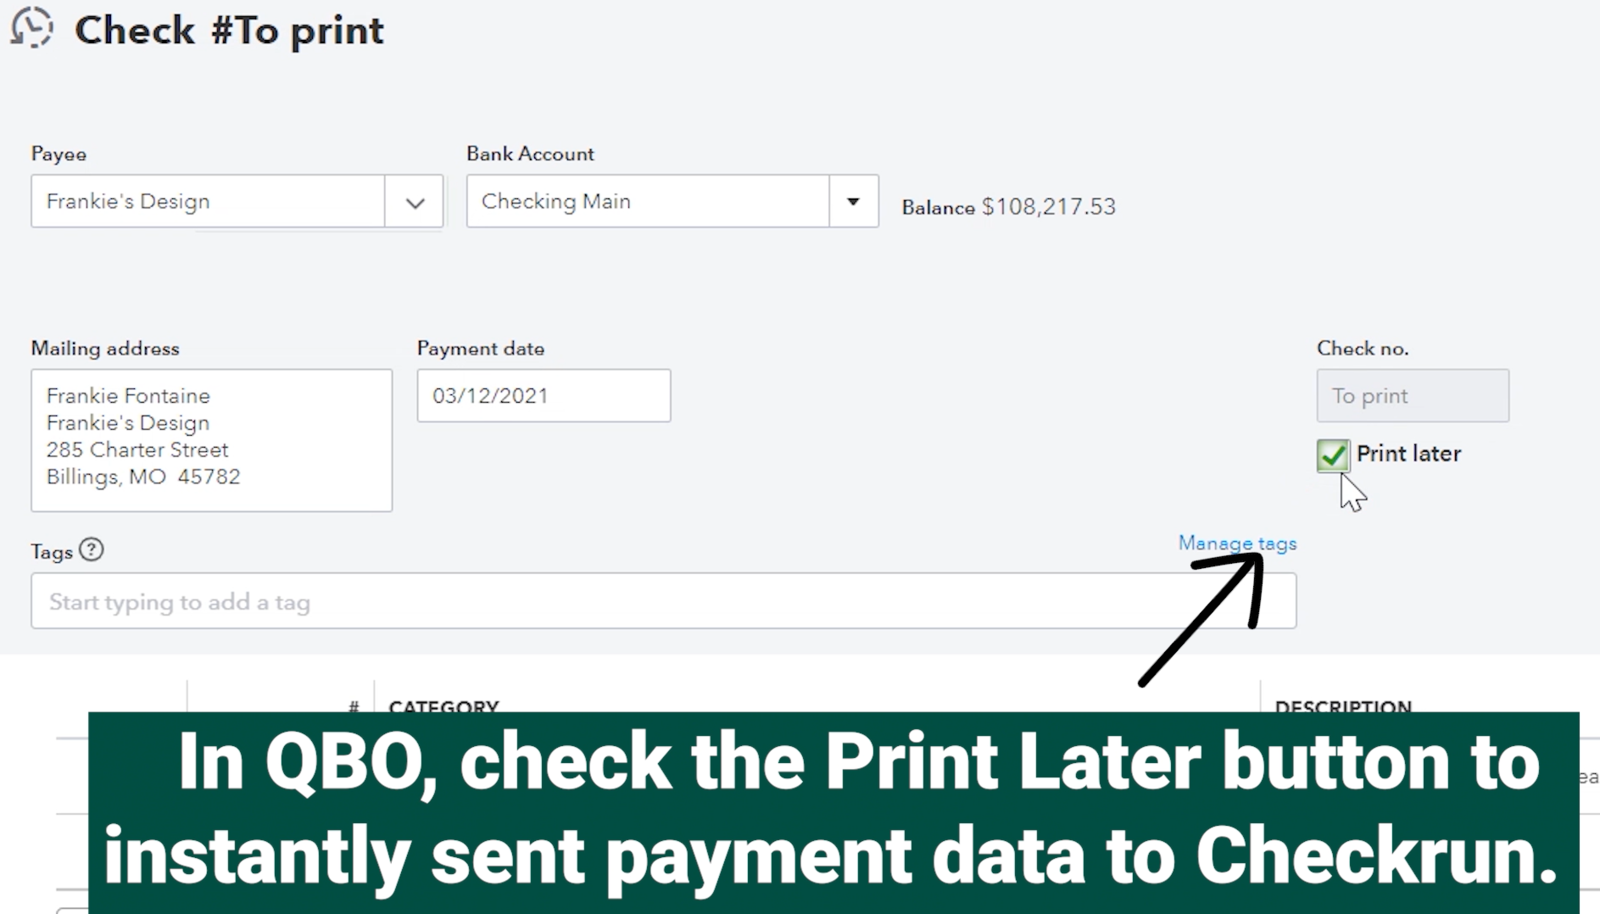 Print Later sends payment data to Checkrun